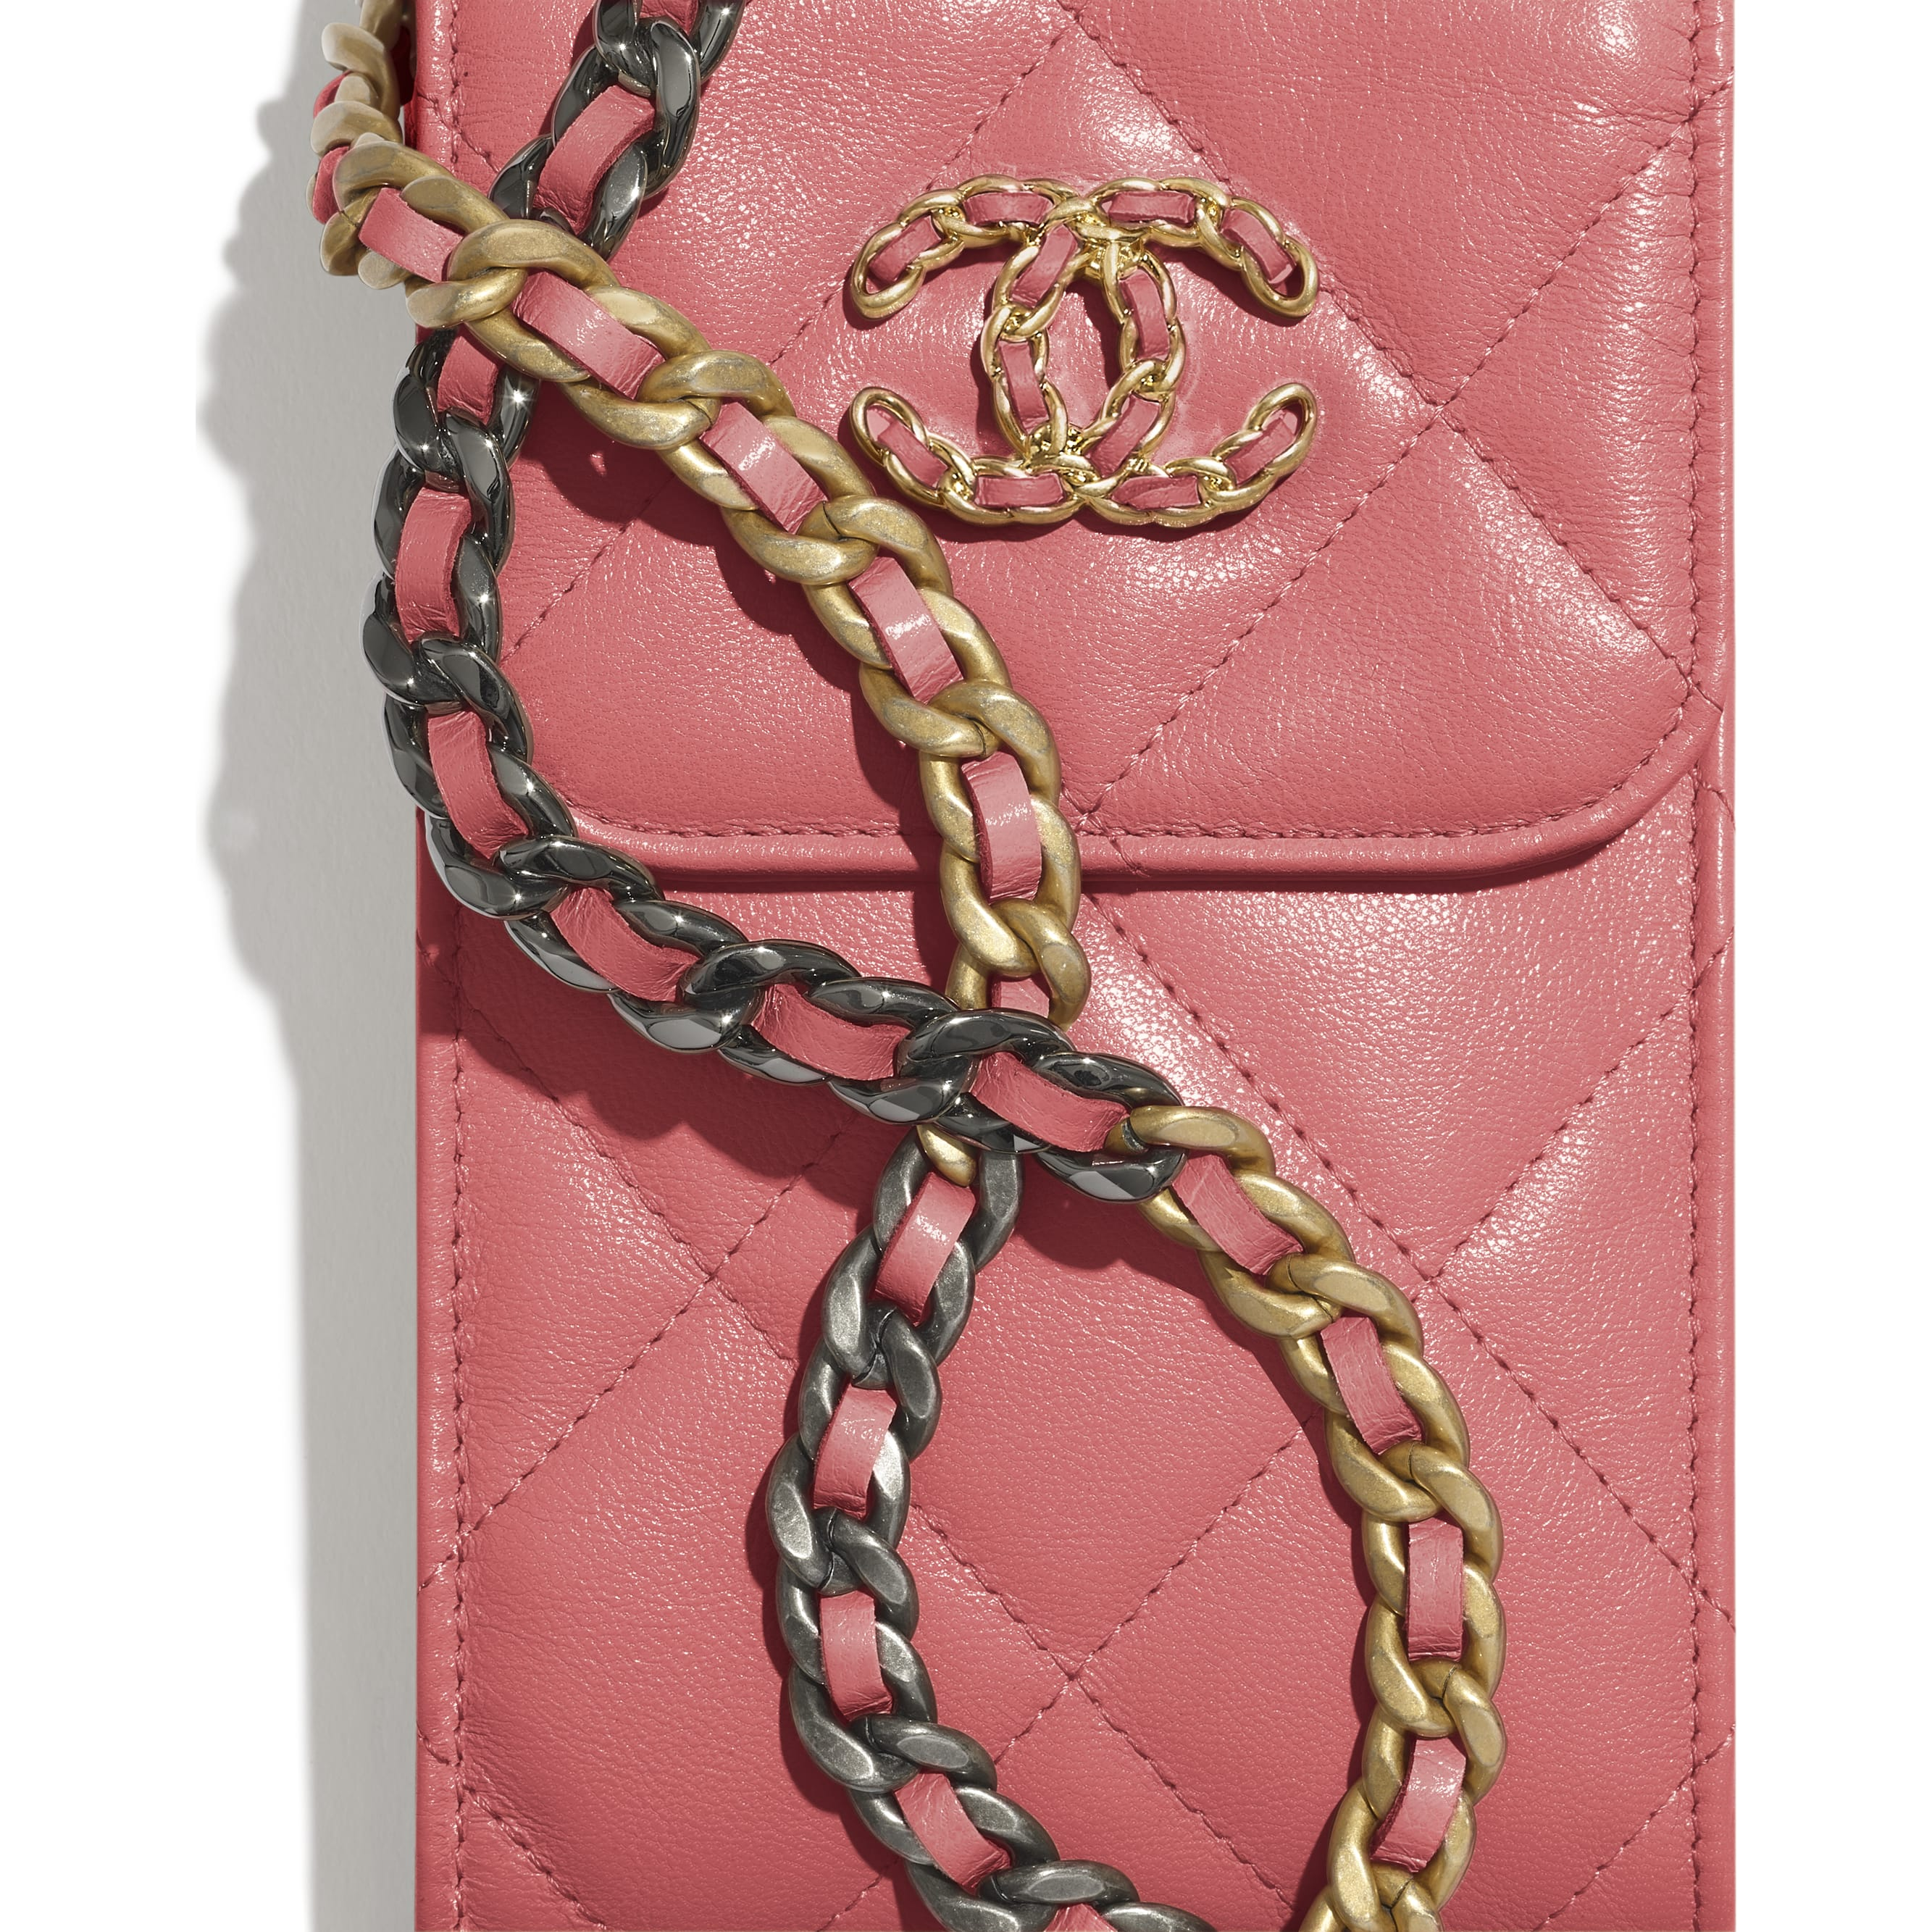 CHANEL 19 Phone Holder with Chain - Coral - Lambskin, Gold-Tone, Silver-Tone & Ruthenium-Finish Metal - CHANEL - Extra view - see standard sized version